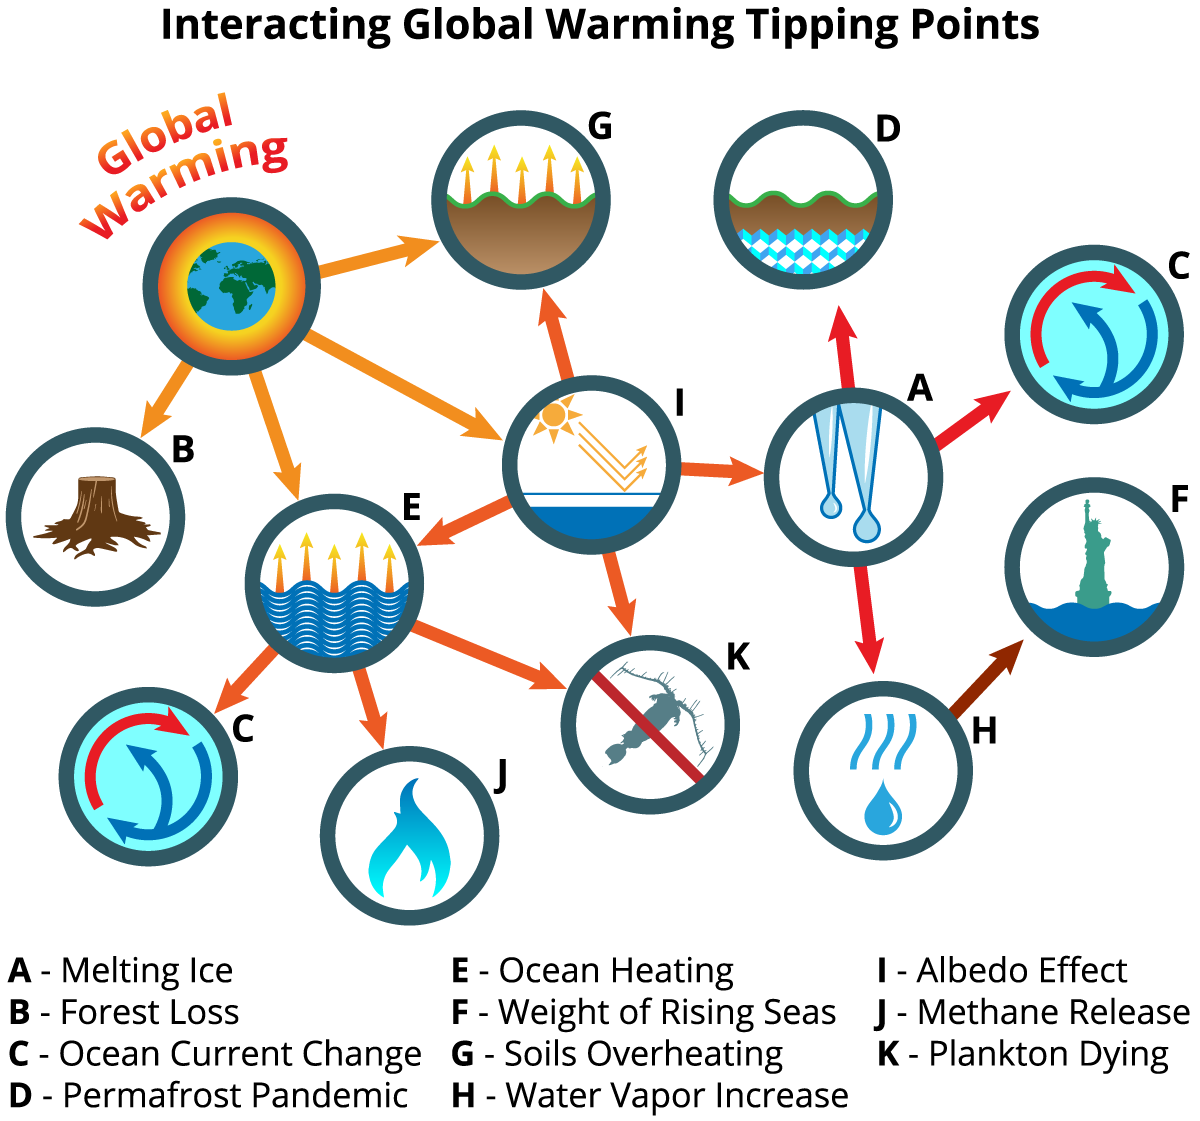 Chapter_4_Interacting_Global_Warming_Tipping_Points.png